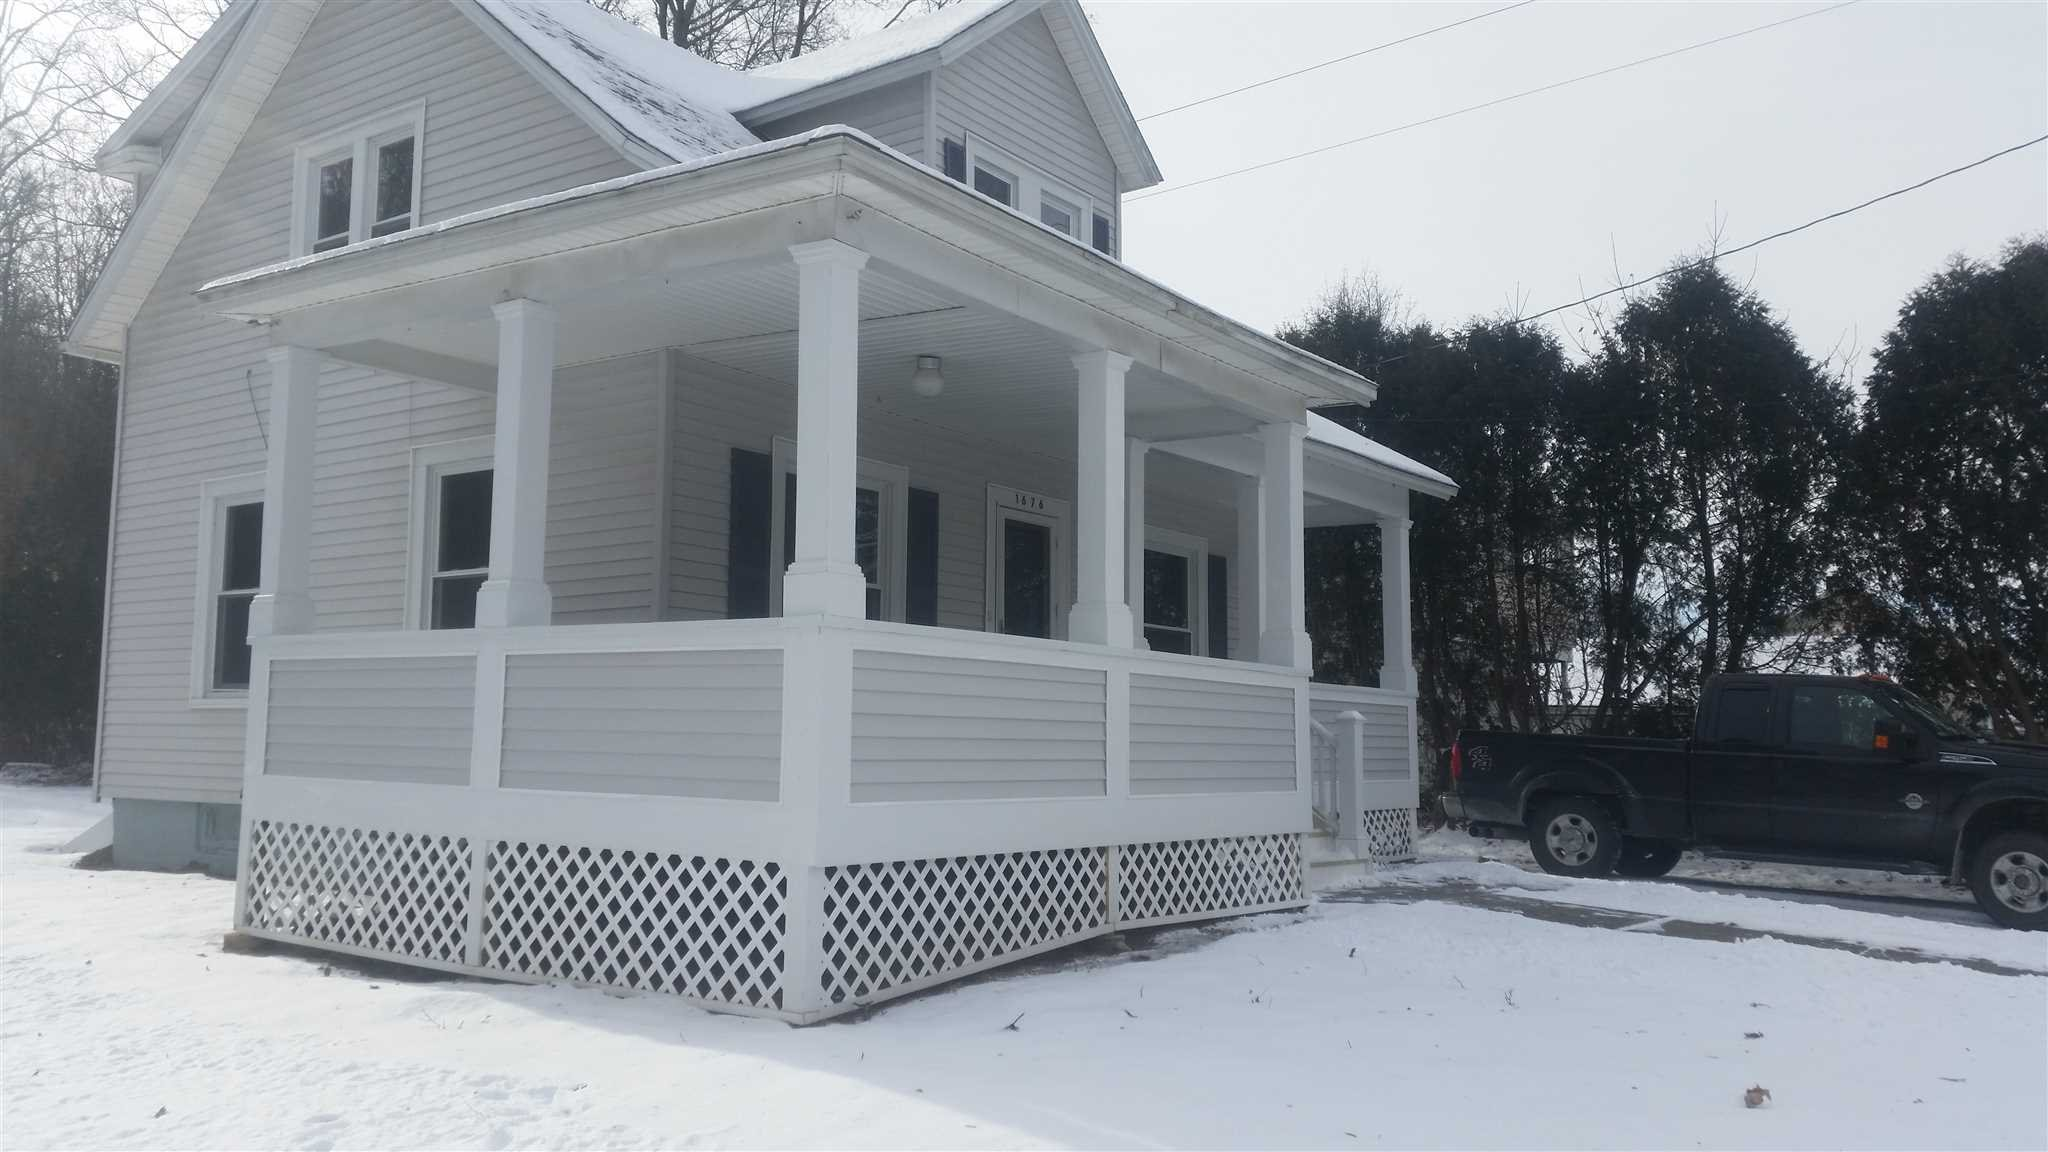 Single Family Home for Sale at 1676 MAIN STREET 1676 MAIN STREET Pleasant Valley, New York 12569 United States